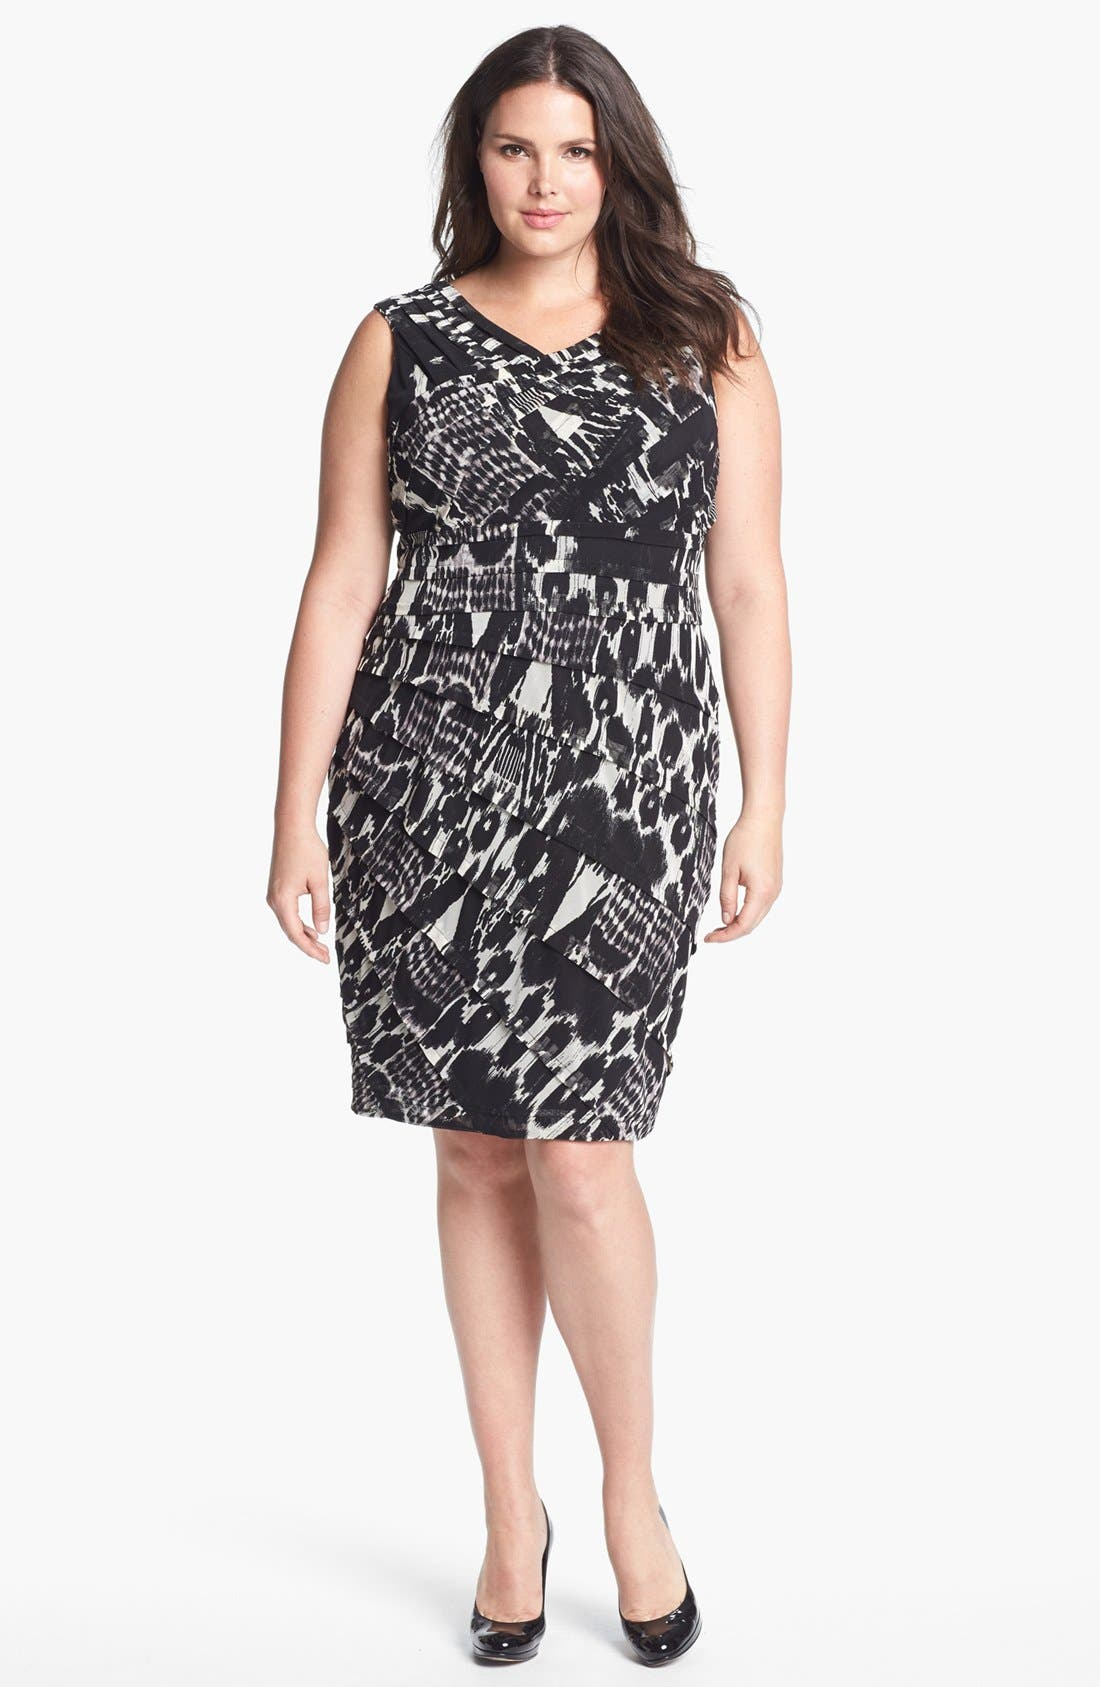 Alternate Image 1 Selected - Adrianna Papell Print Tiered Sheath Dress (Plus Size)